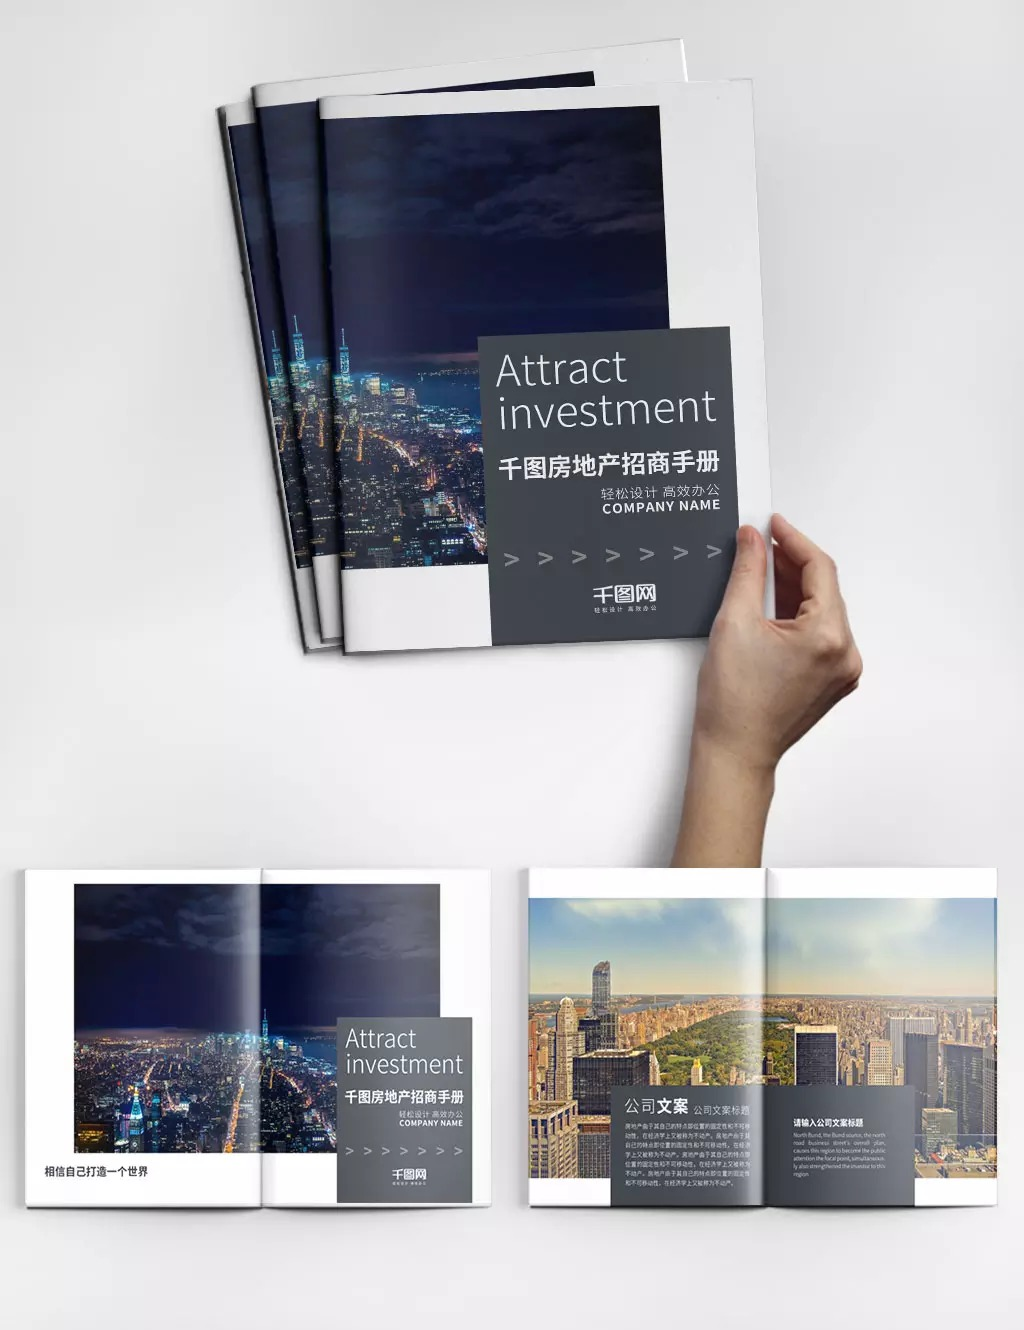 Executive summary 325 south atlanta street roswell, ga 30075 location: Simple Creative Real Estate Investment Brochure Design Psd Template Estate Album Merchants Album Cool Template Download On Pngtree